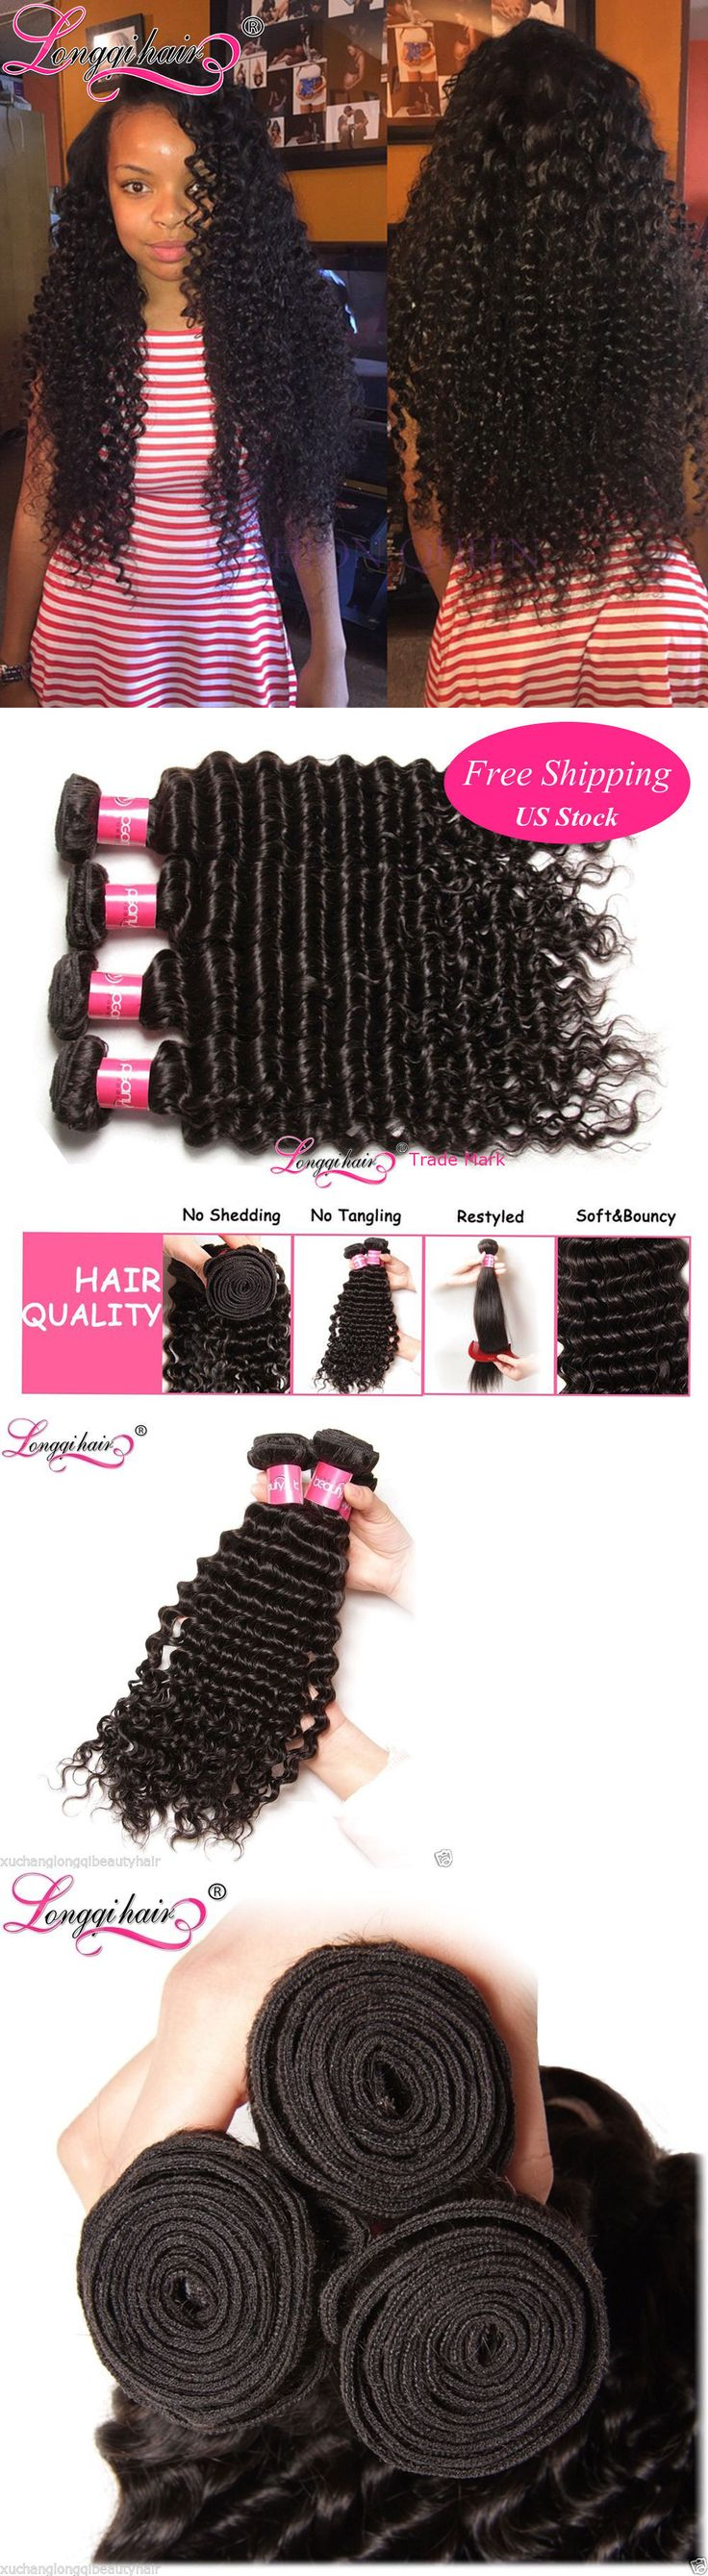 Hair Extensions: 20+22+24 7A Peruvian Deep Wave 3 Bundles Virgin Curly Human Hair Extensions 300G BUY IT NOW ONLY: $119.35